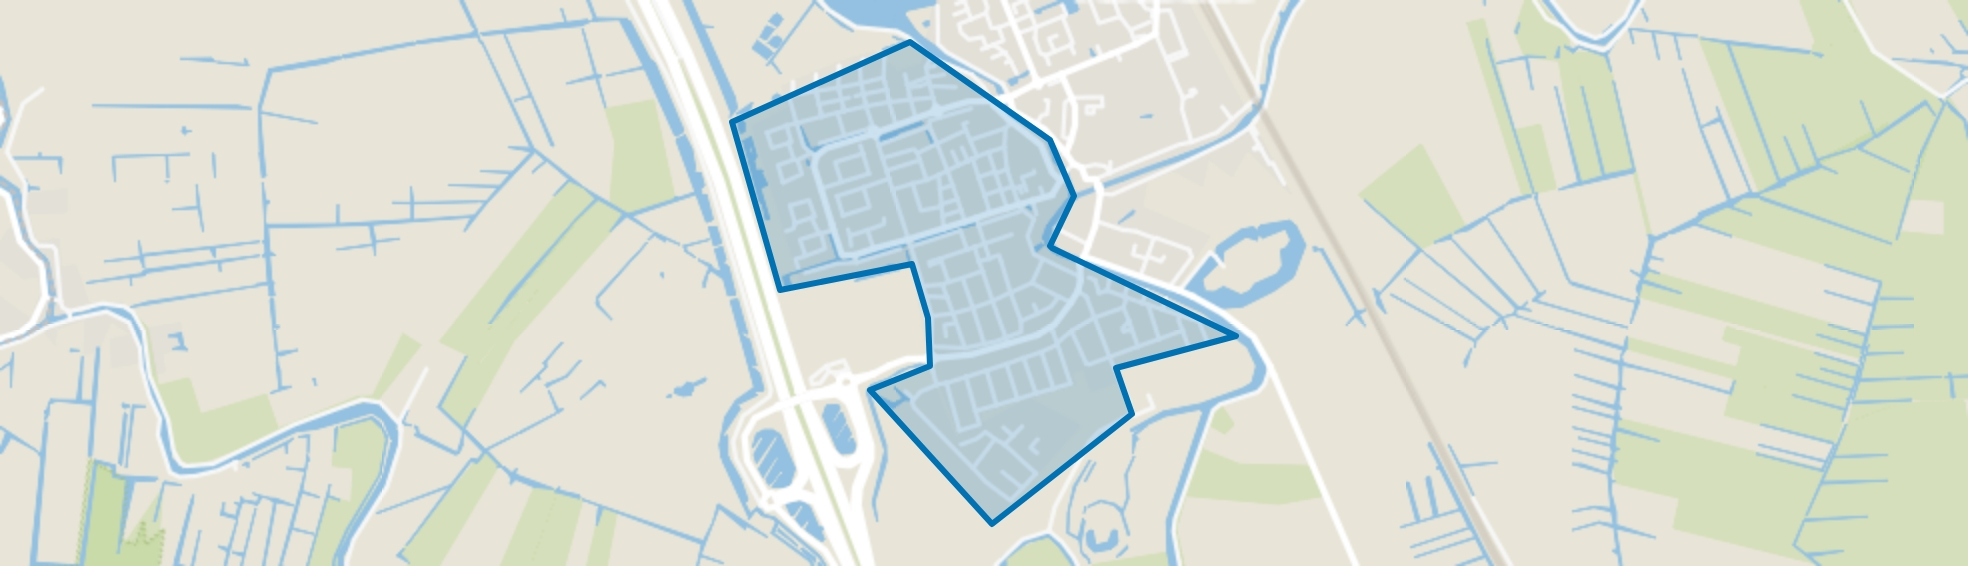 Abcoude-Zuidwest, Abcoude map